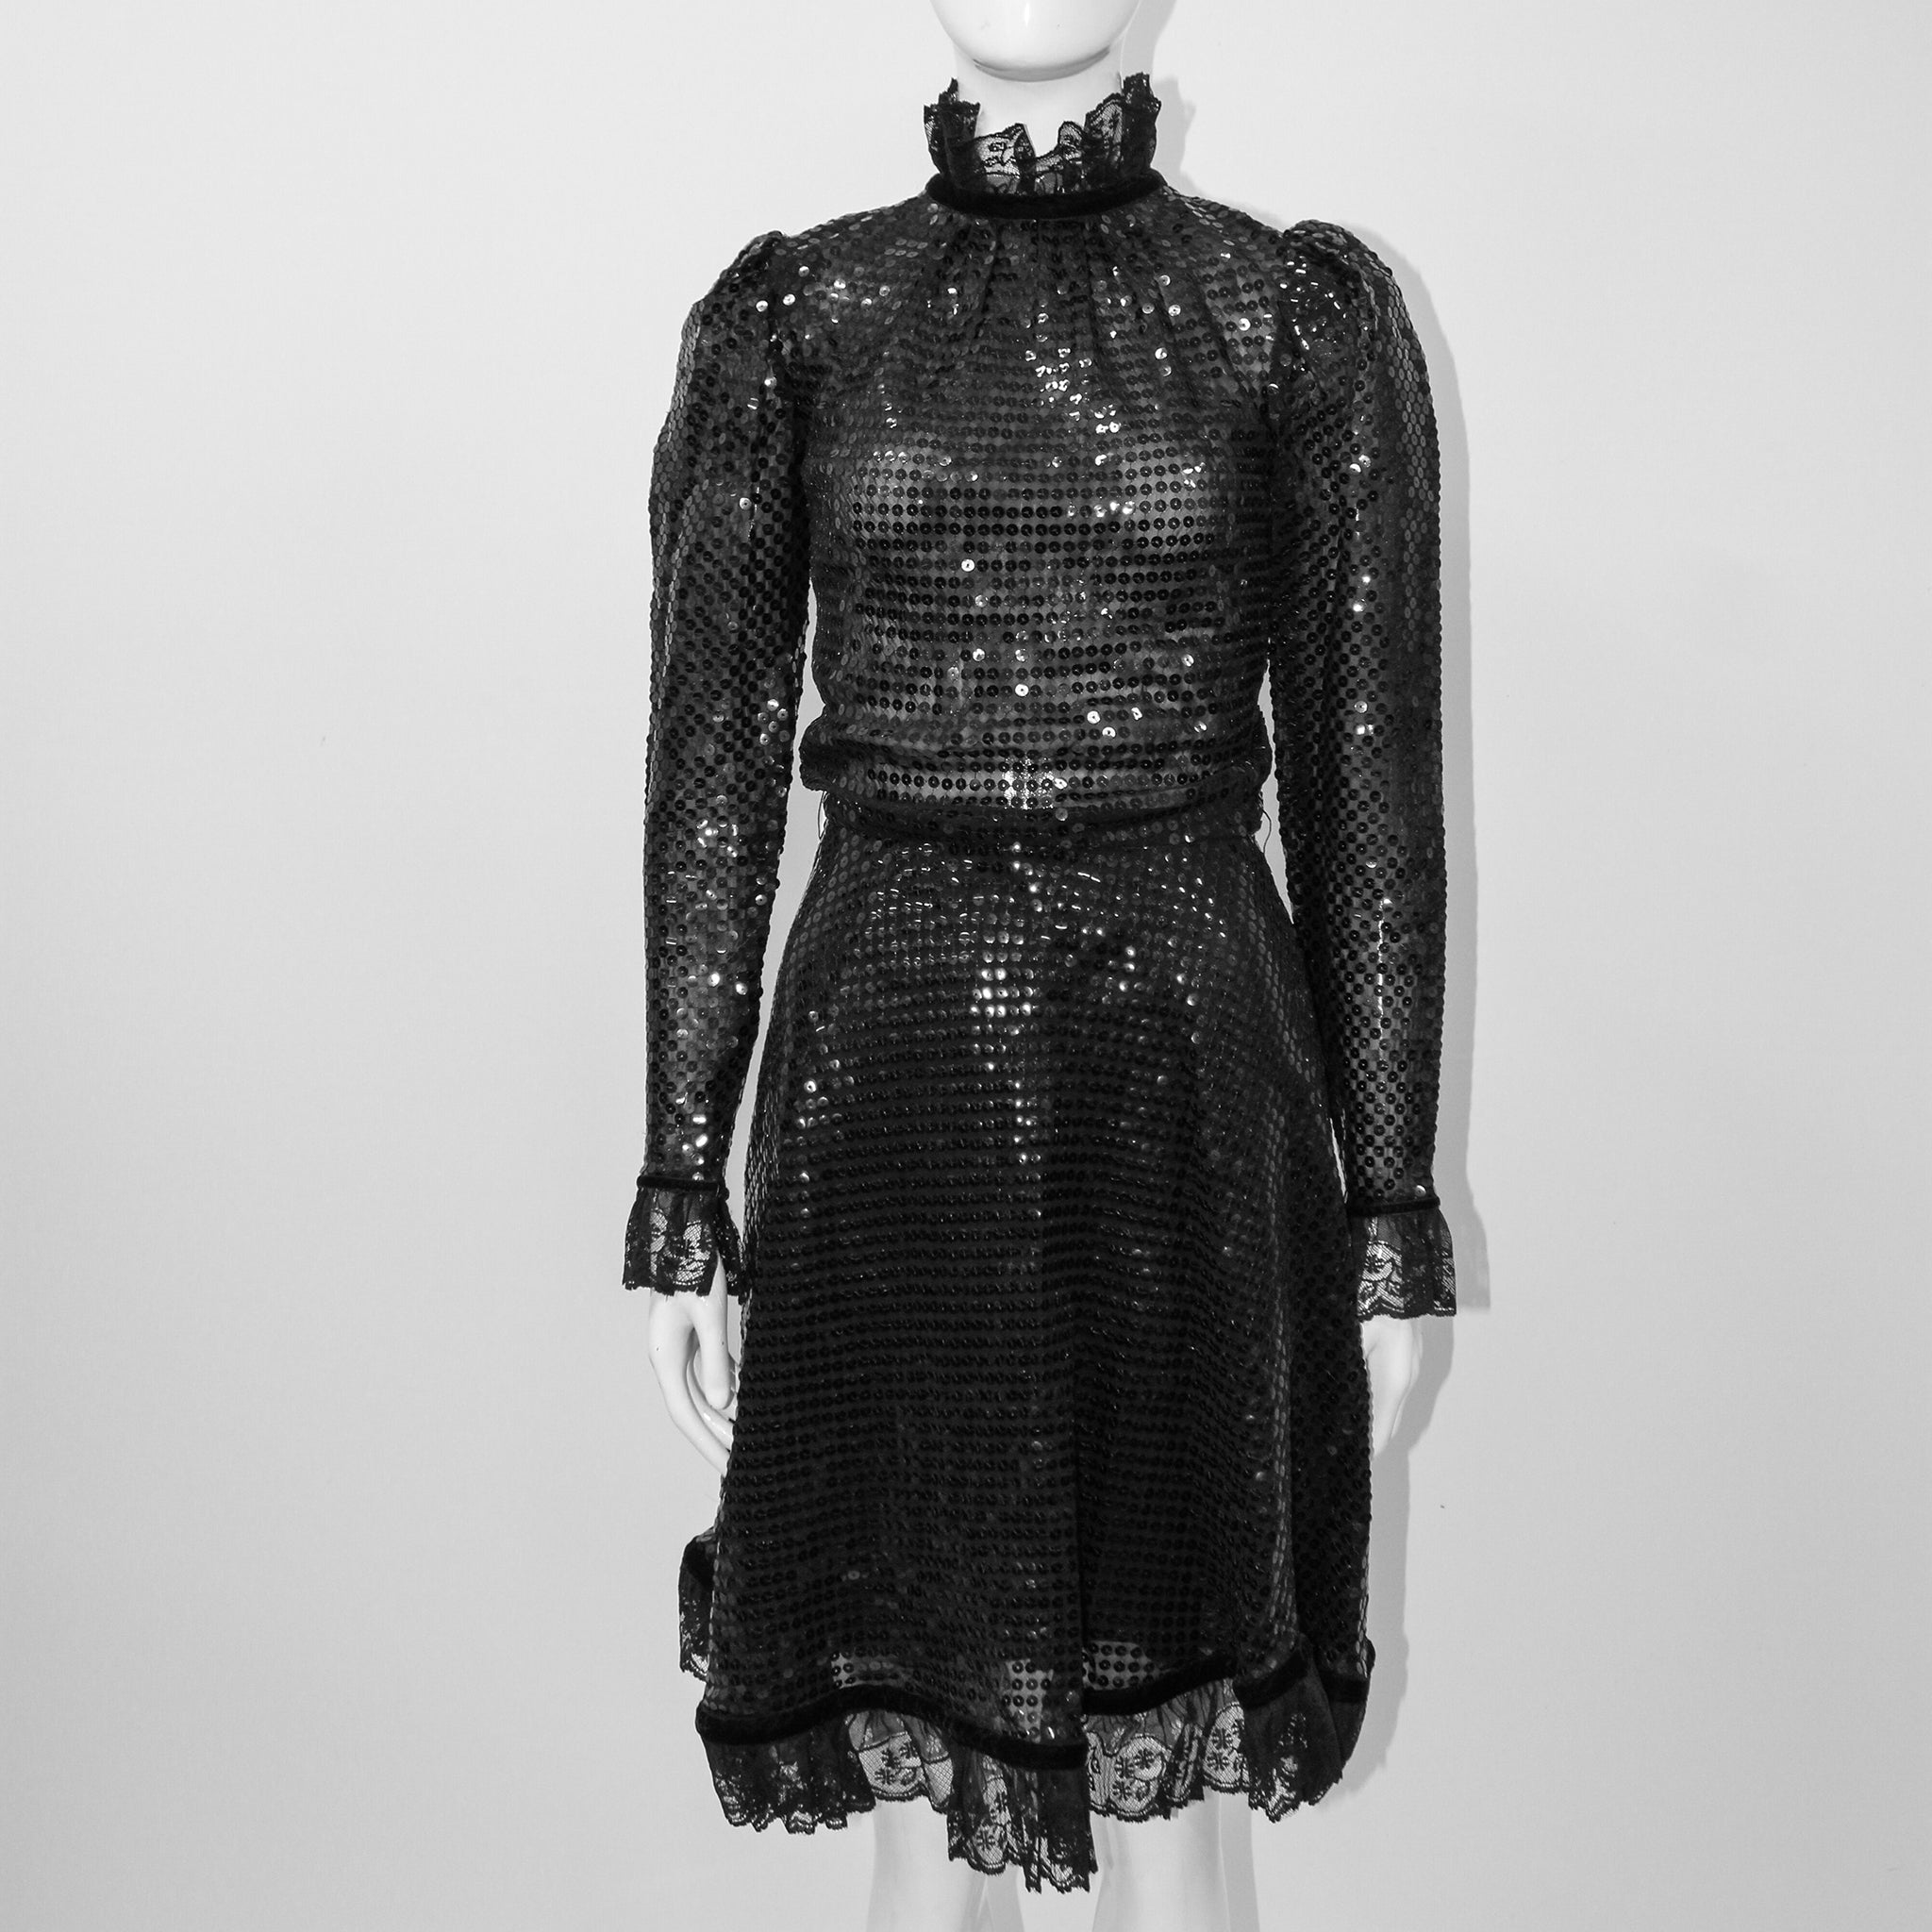 Sequin Black Dress Givenchy Nouvelle Boutique Paris